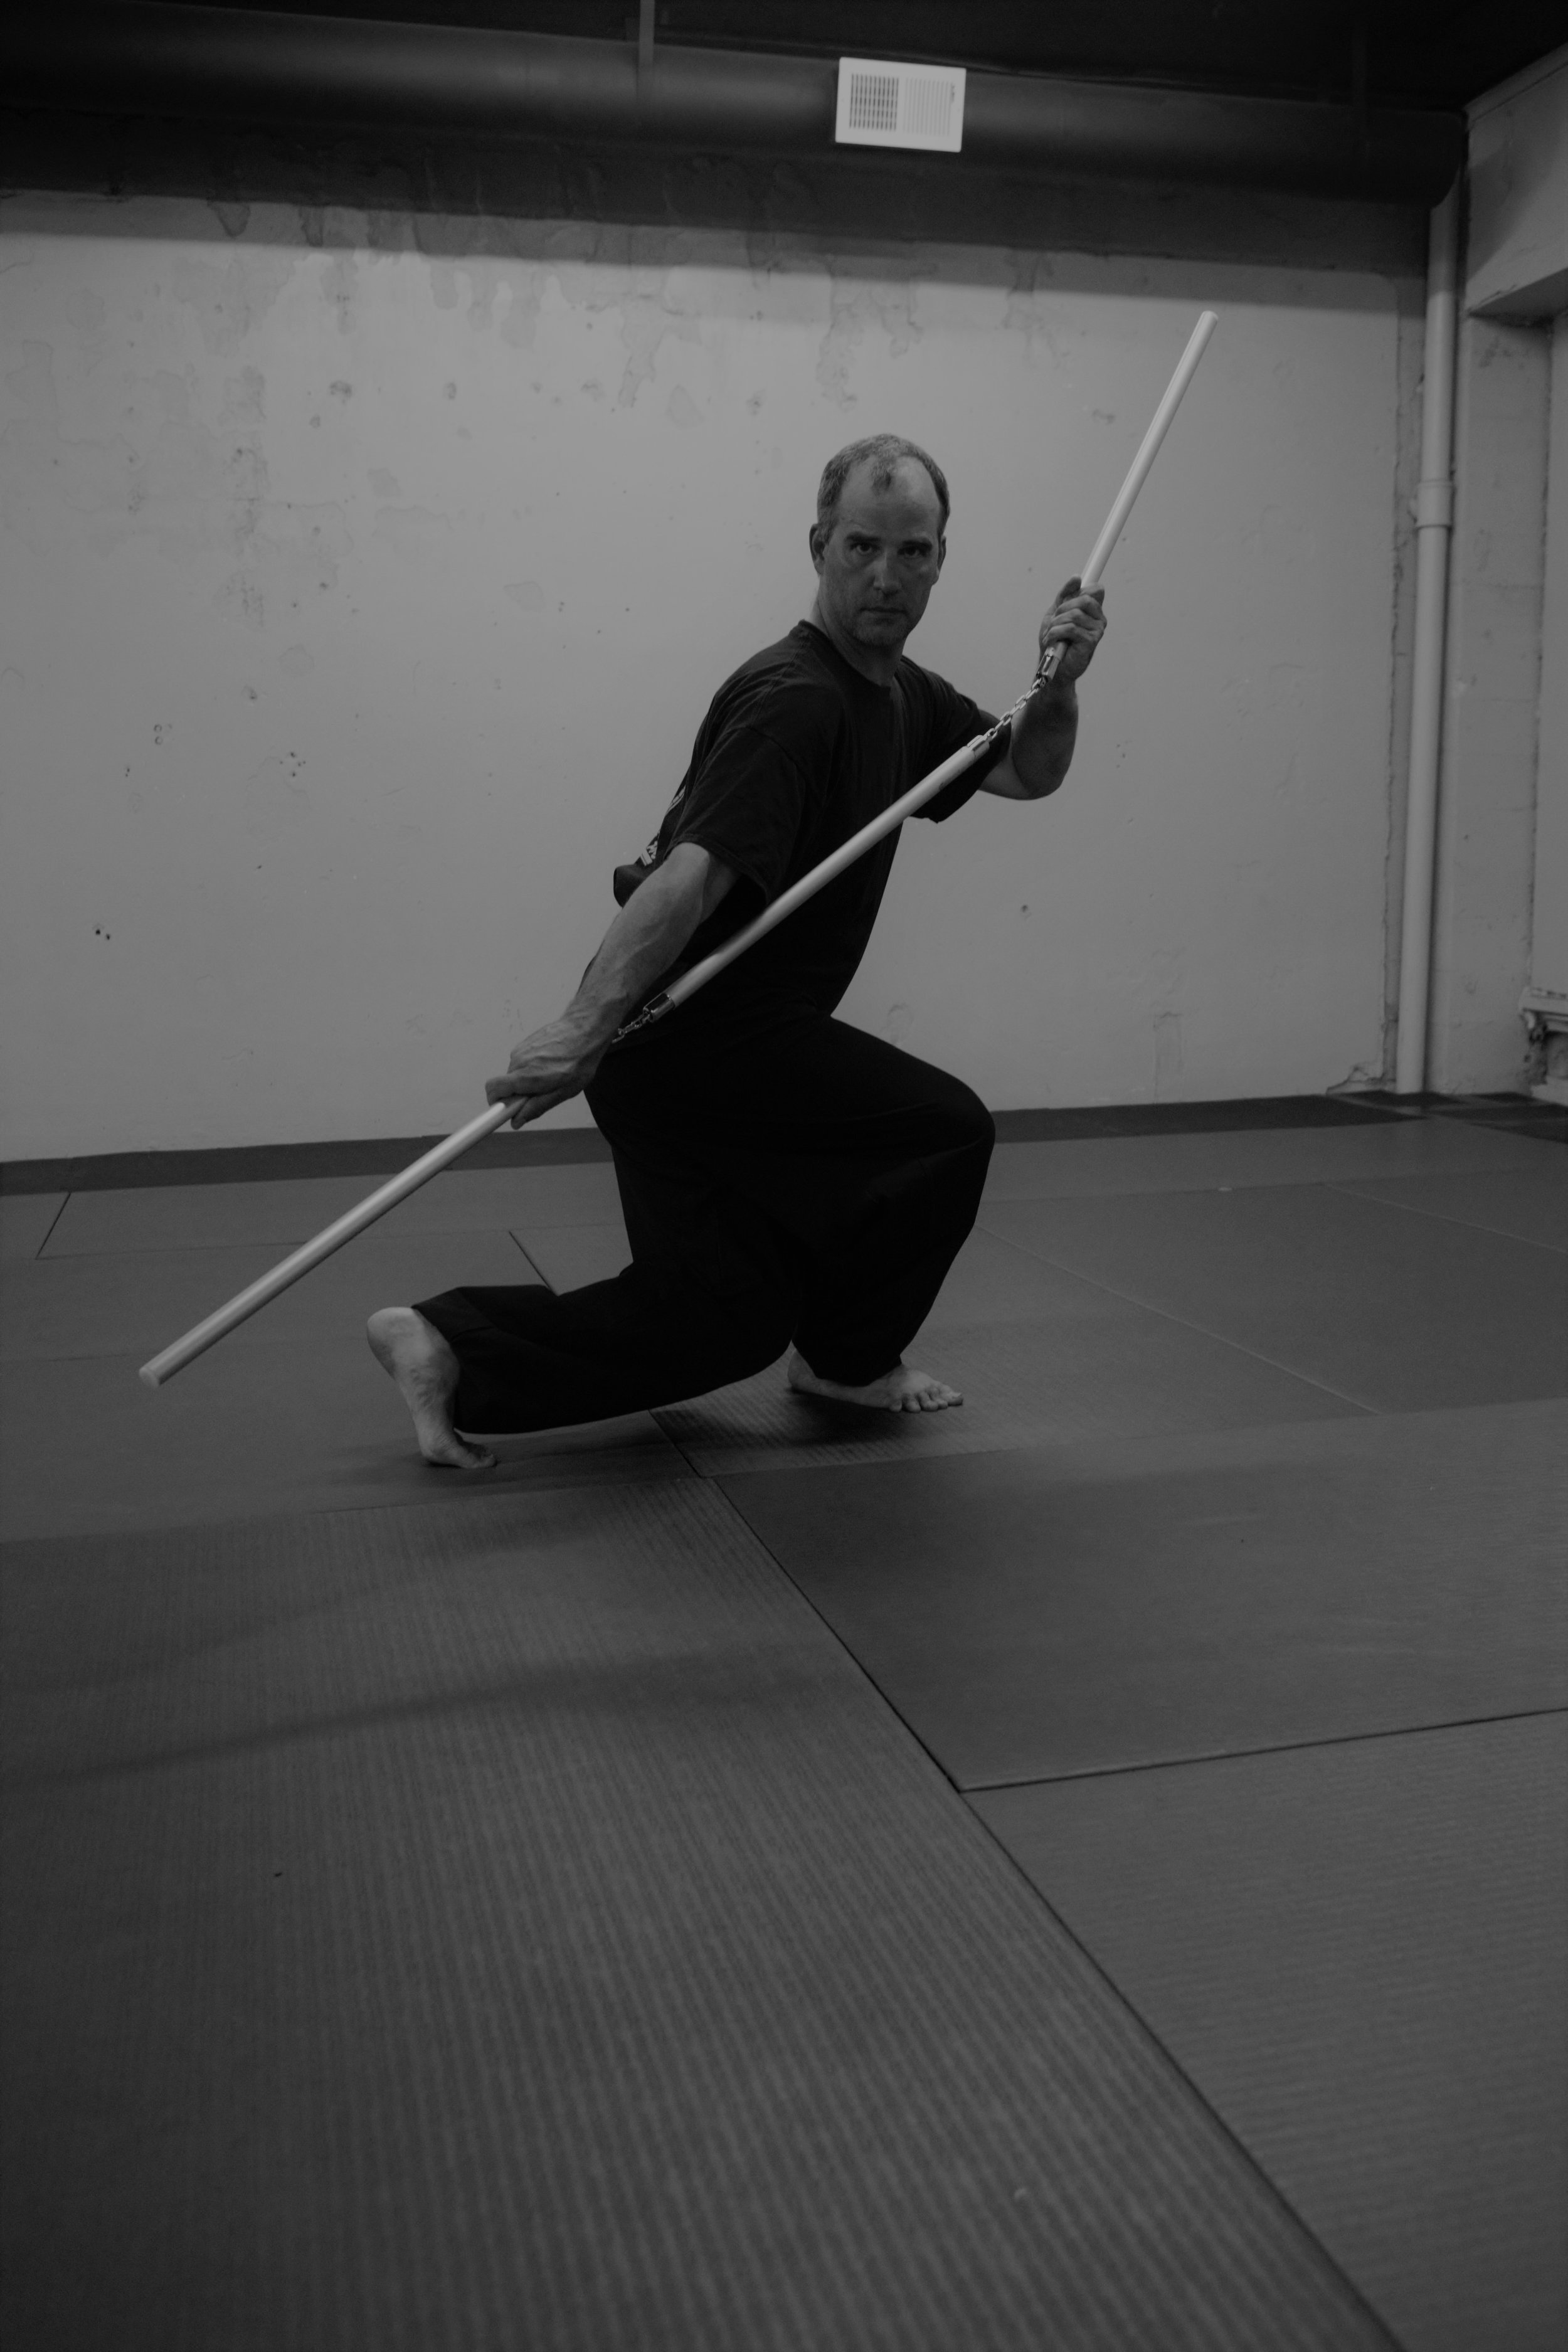 - Mr. Rabourn dabbled in Karate as a teenager, but didn't start committed Kung Fu training until after college under Sifu Anjaz, August, 1993. As a person who enjoys many different outdoor pursuits ranging from mountain climbing to kayaking, Kung Fu training provided increased focus, strength, endurance, flexibility and confidence for these other passions. Once Mr. Rabourn discovered his love of teaching through kung fu, that interest led him into also teaching downhill skiing. The mental and physical skills he practices in Kung Fu help him daily in his career as an environmental professional restoring and protecting salmon habitat.